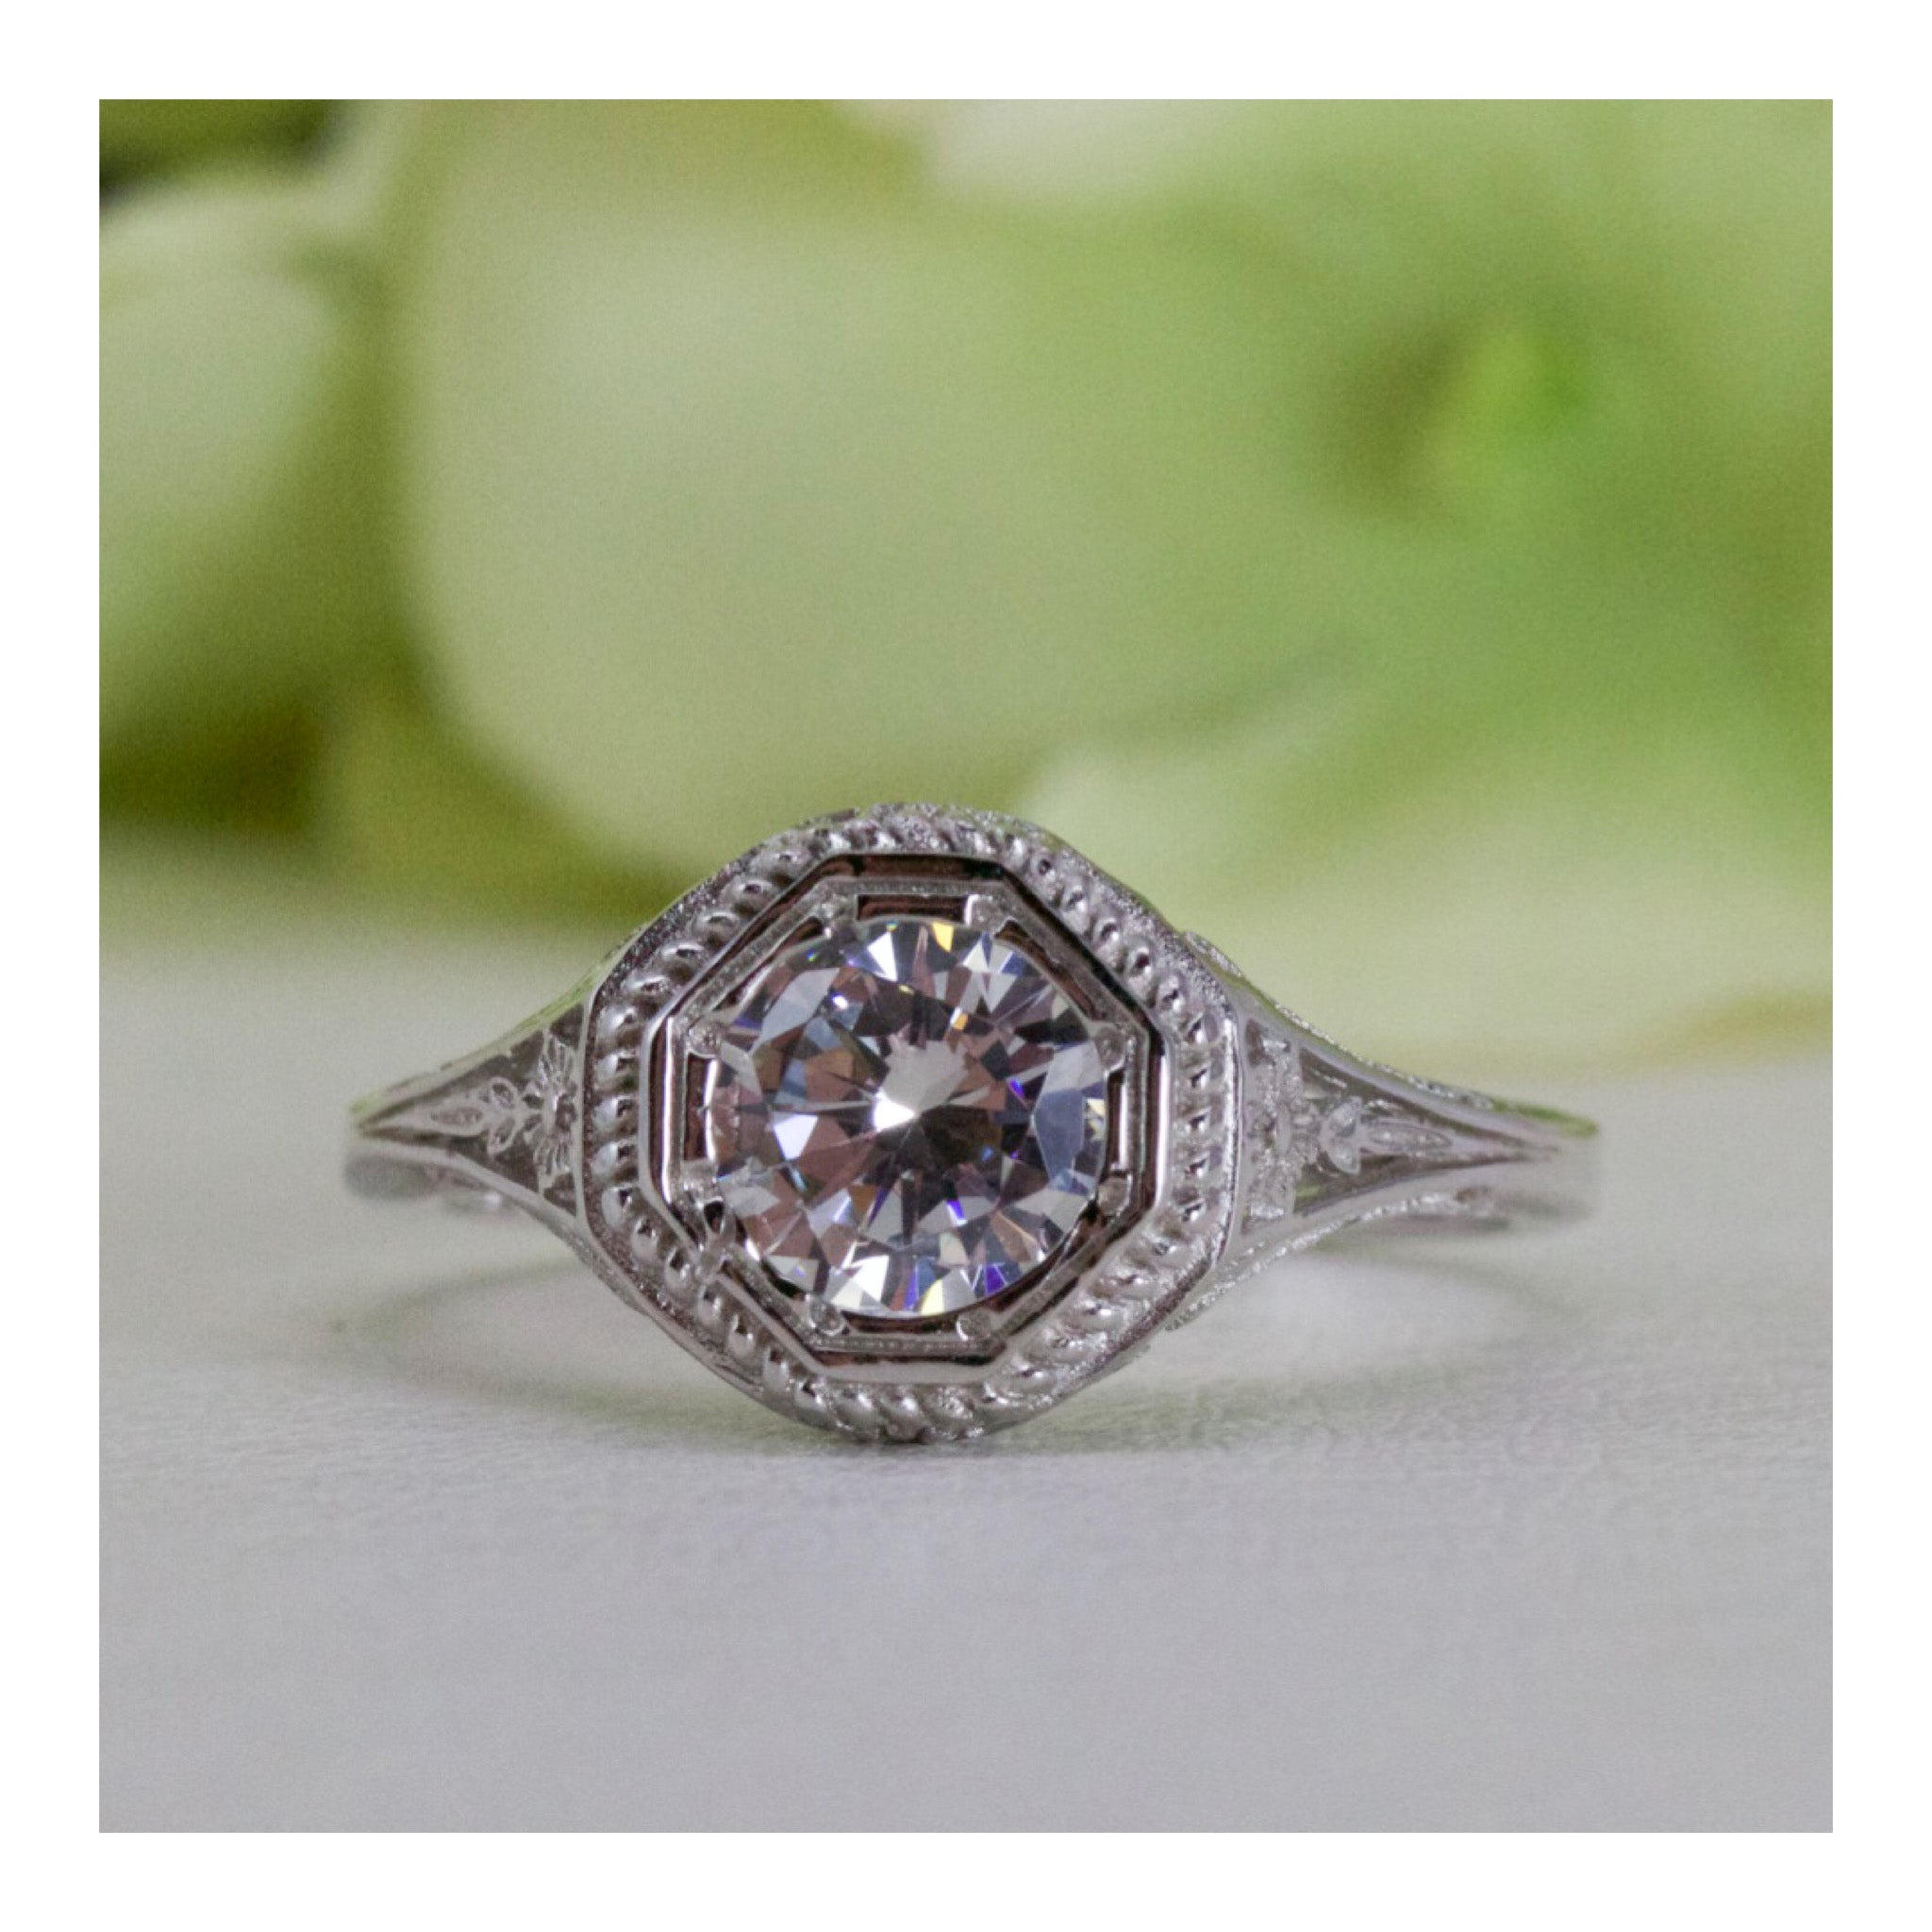 winston kept silver peach band grandma size filigree product things cushion morganite ring vintage bands sterling charles carat cz double statement cut